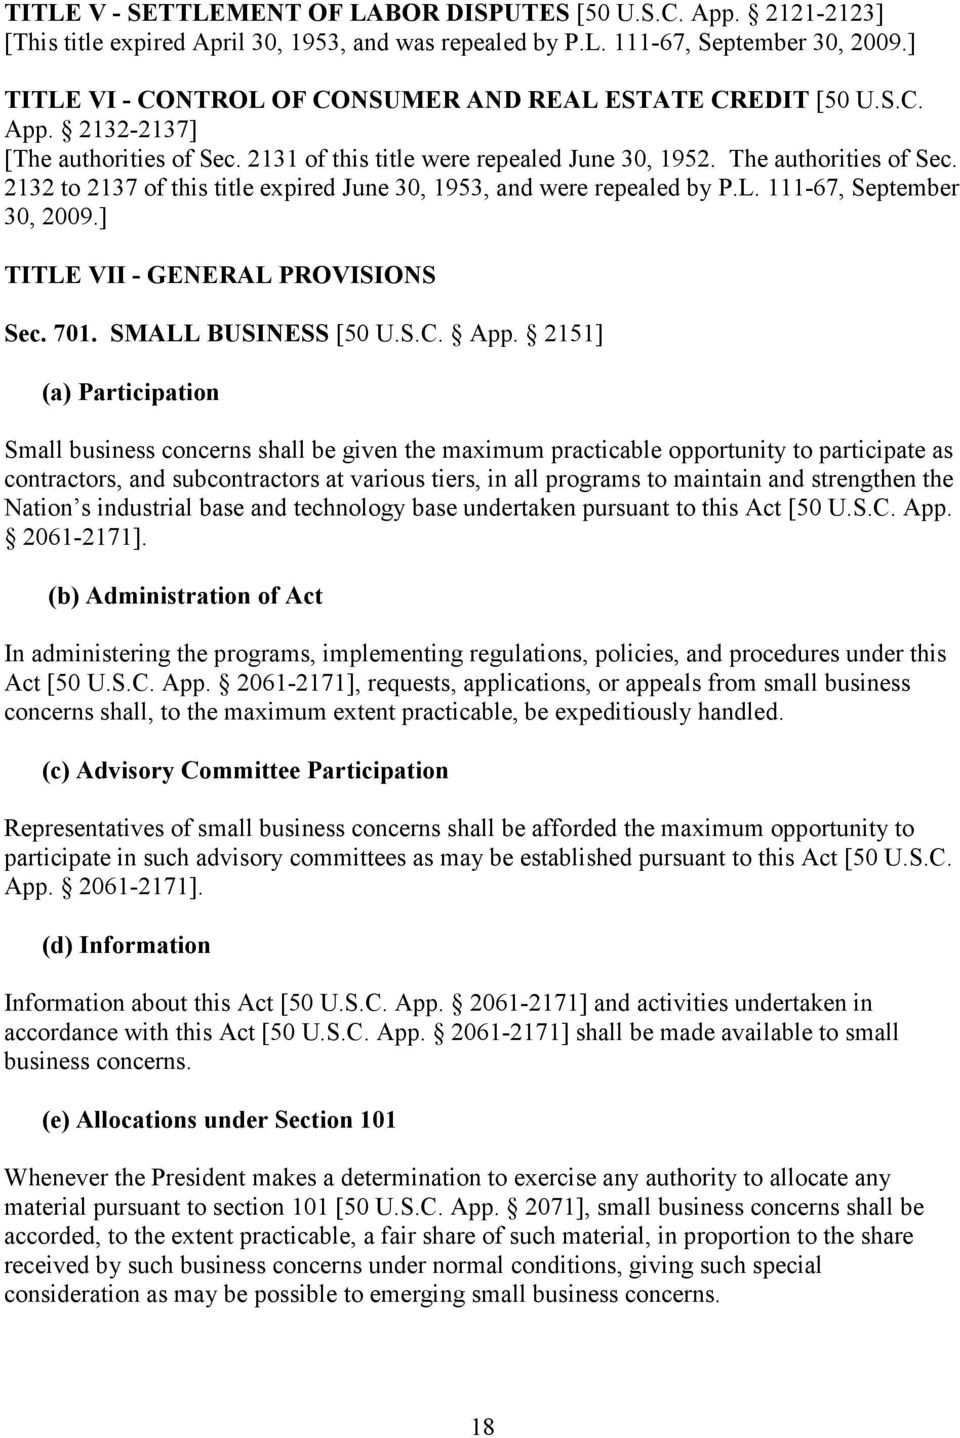 2132 to 2137 of this title expired June 30, 1953, and were repealed by P.L. 111-67, September 30, 2009.] TITLE VII - GENERAL PROVISIONS Sec. 701. SMALL BUSINESS [50 U.S.C. App.